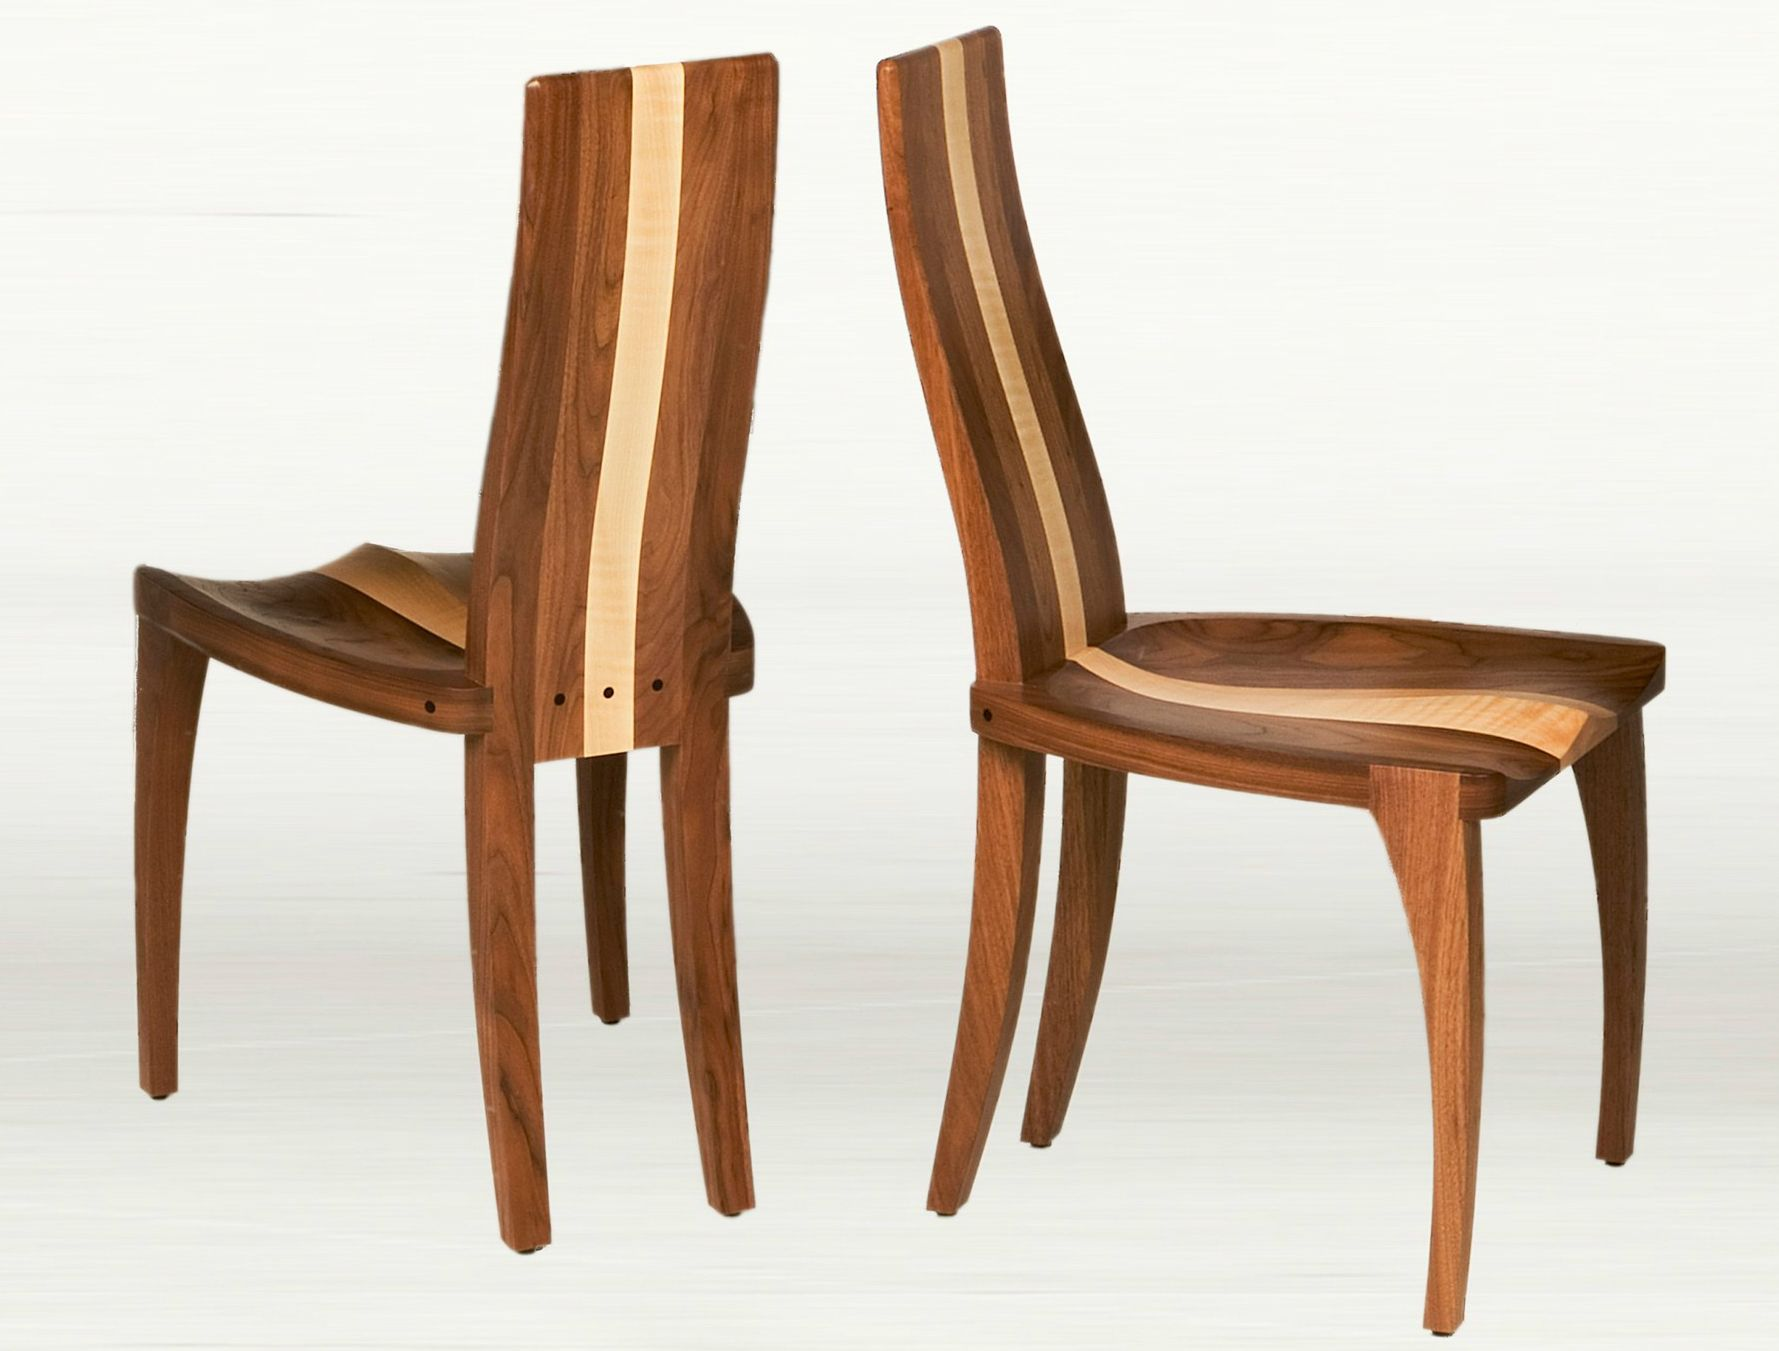 Curved Back Dining Room Chairs Interesting Custom Made Modern Dining Chair In Solid Walnut Wood With Carved Inspiration Design